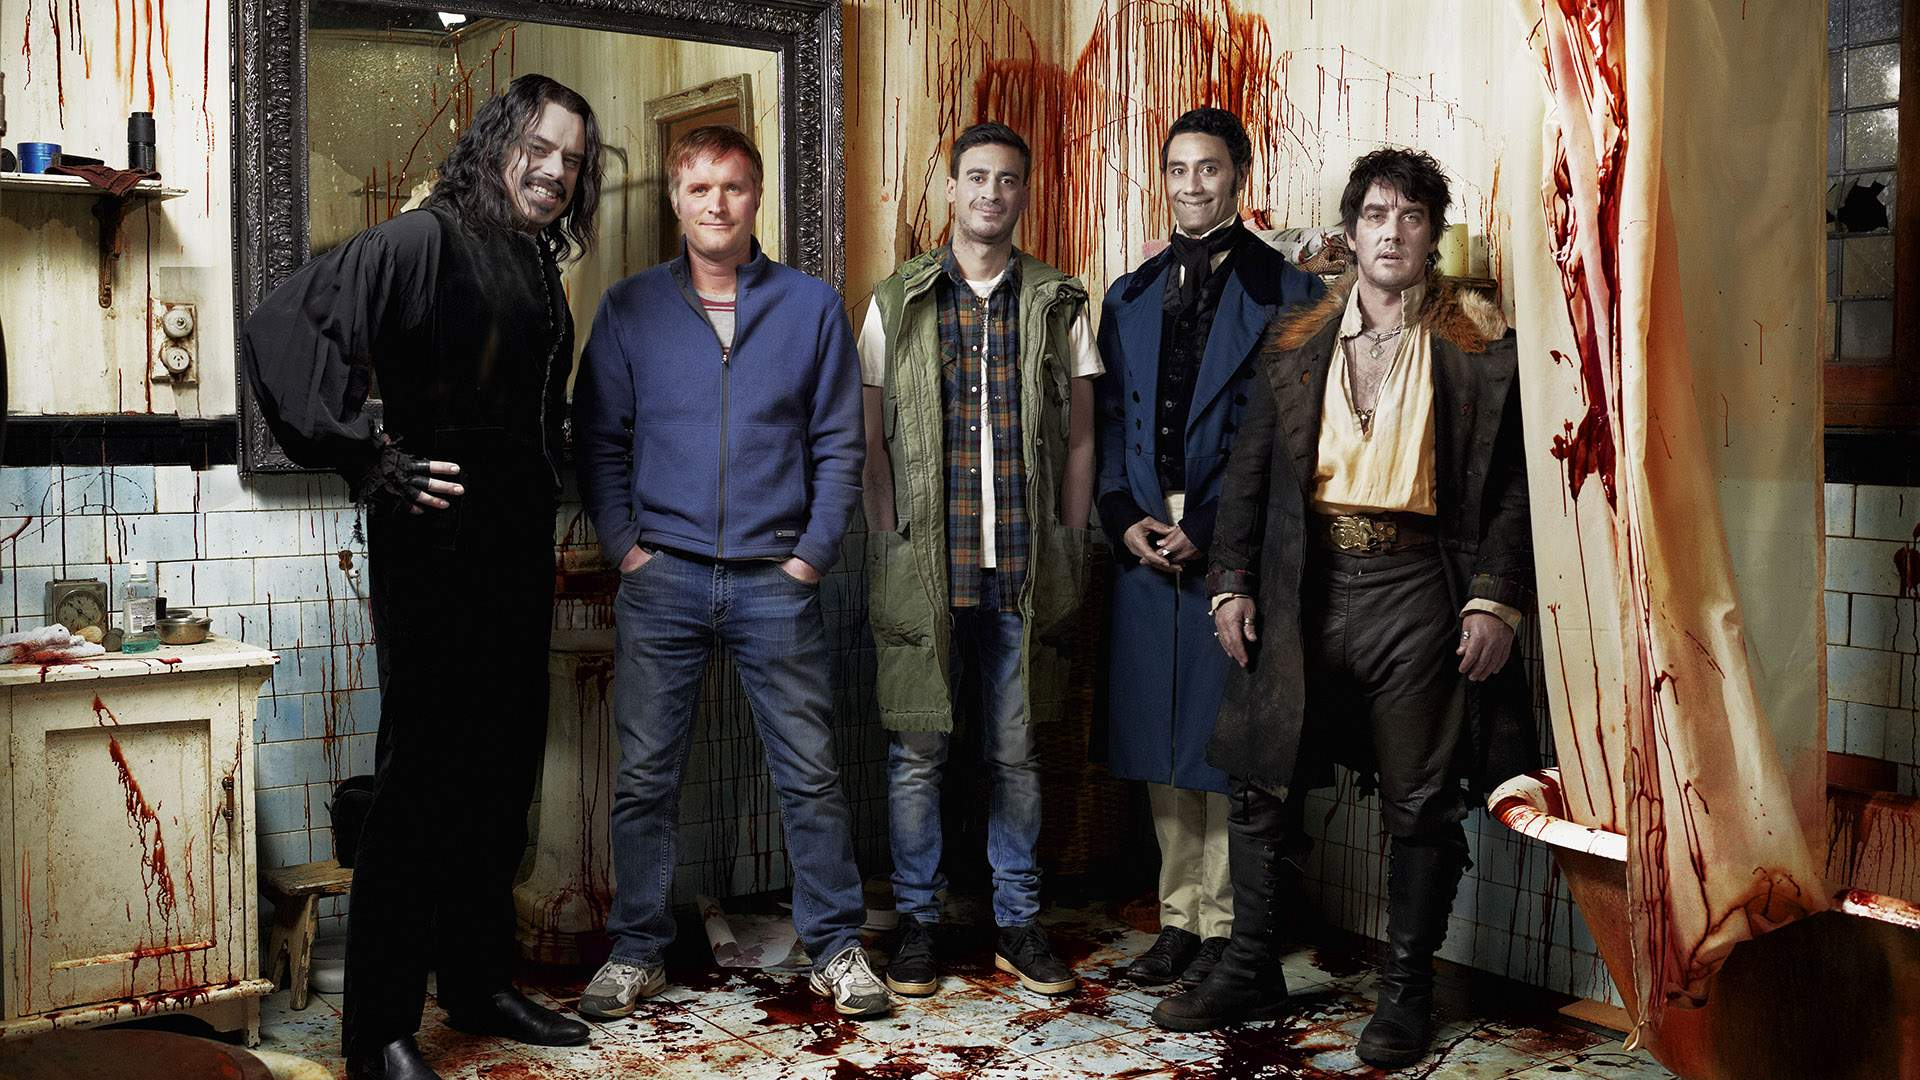 The First Clips of the US TV Remake of 'What We Do in the Shadows' Are Here